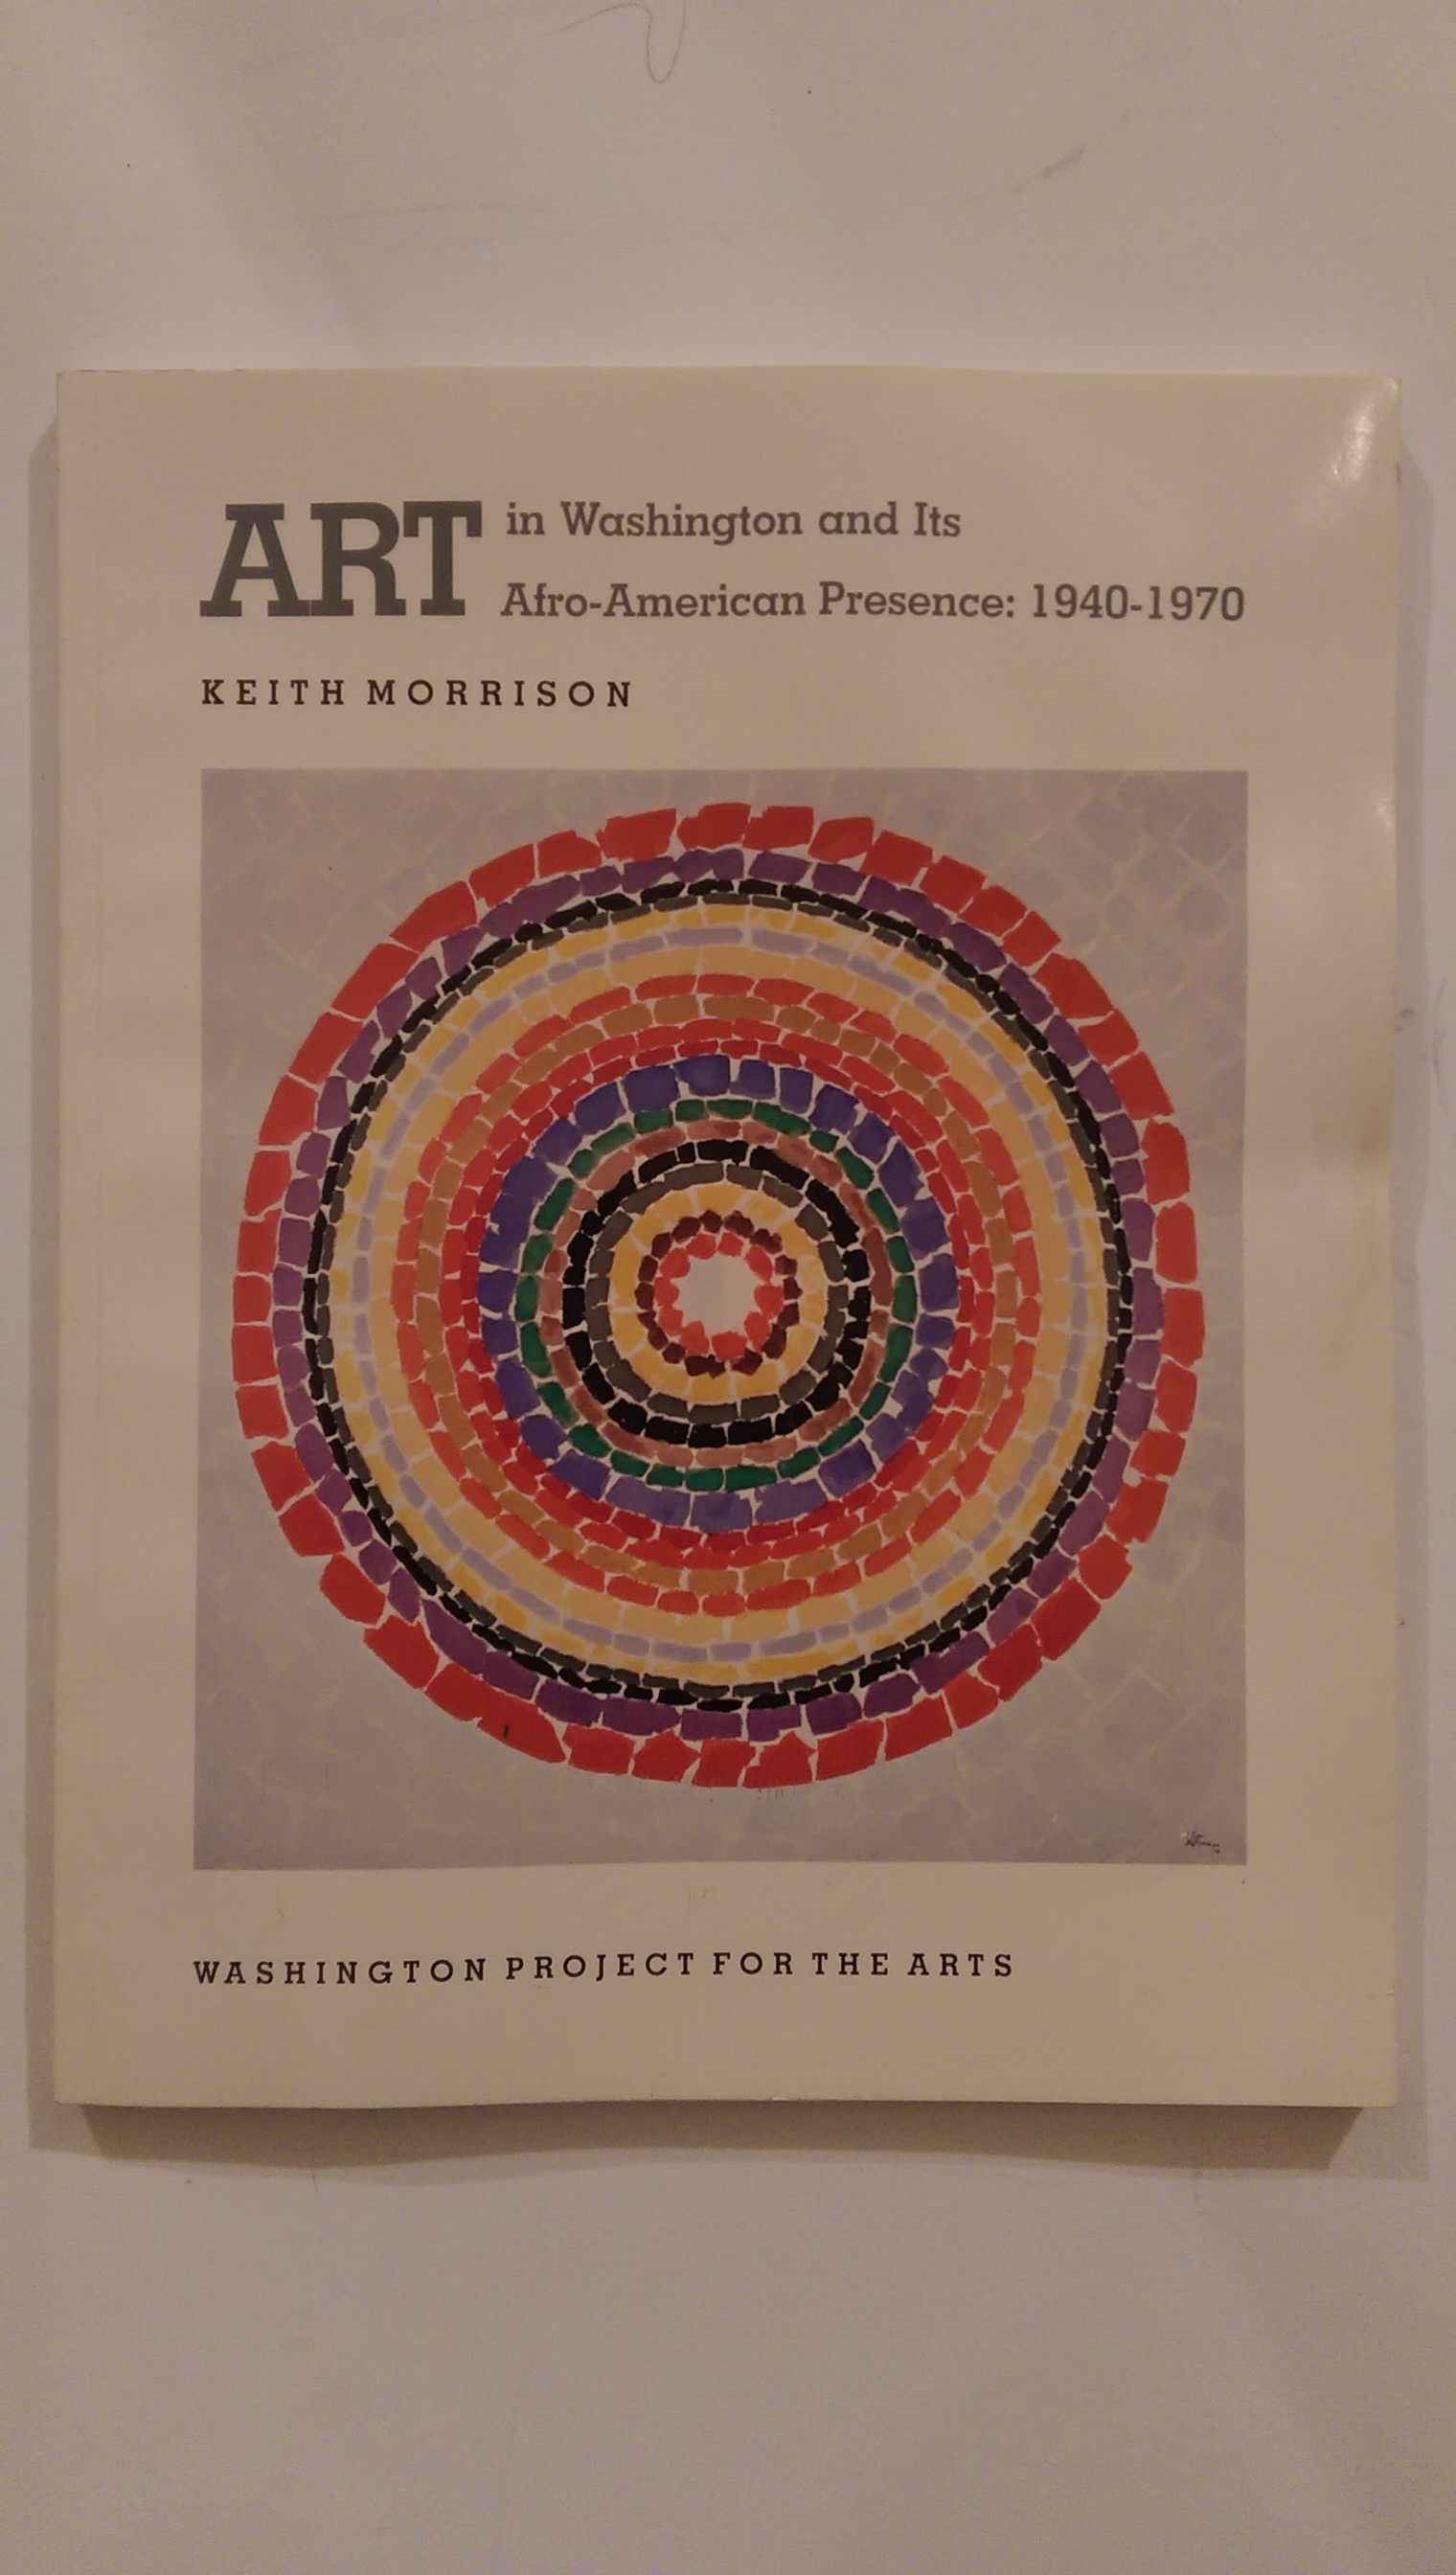 Art in Washington and Its Afro-American Presence: 1840-1970